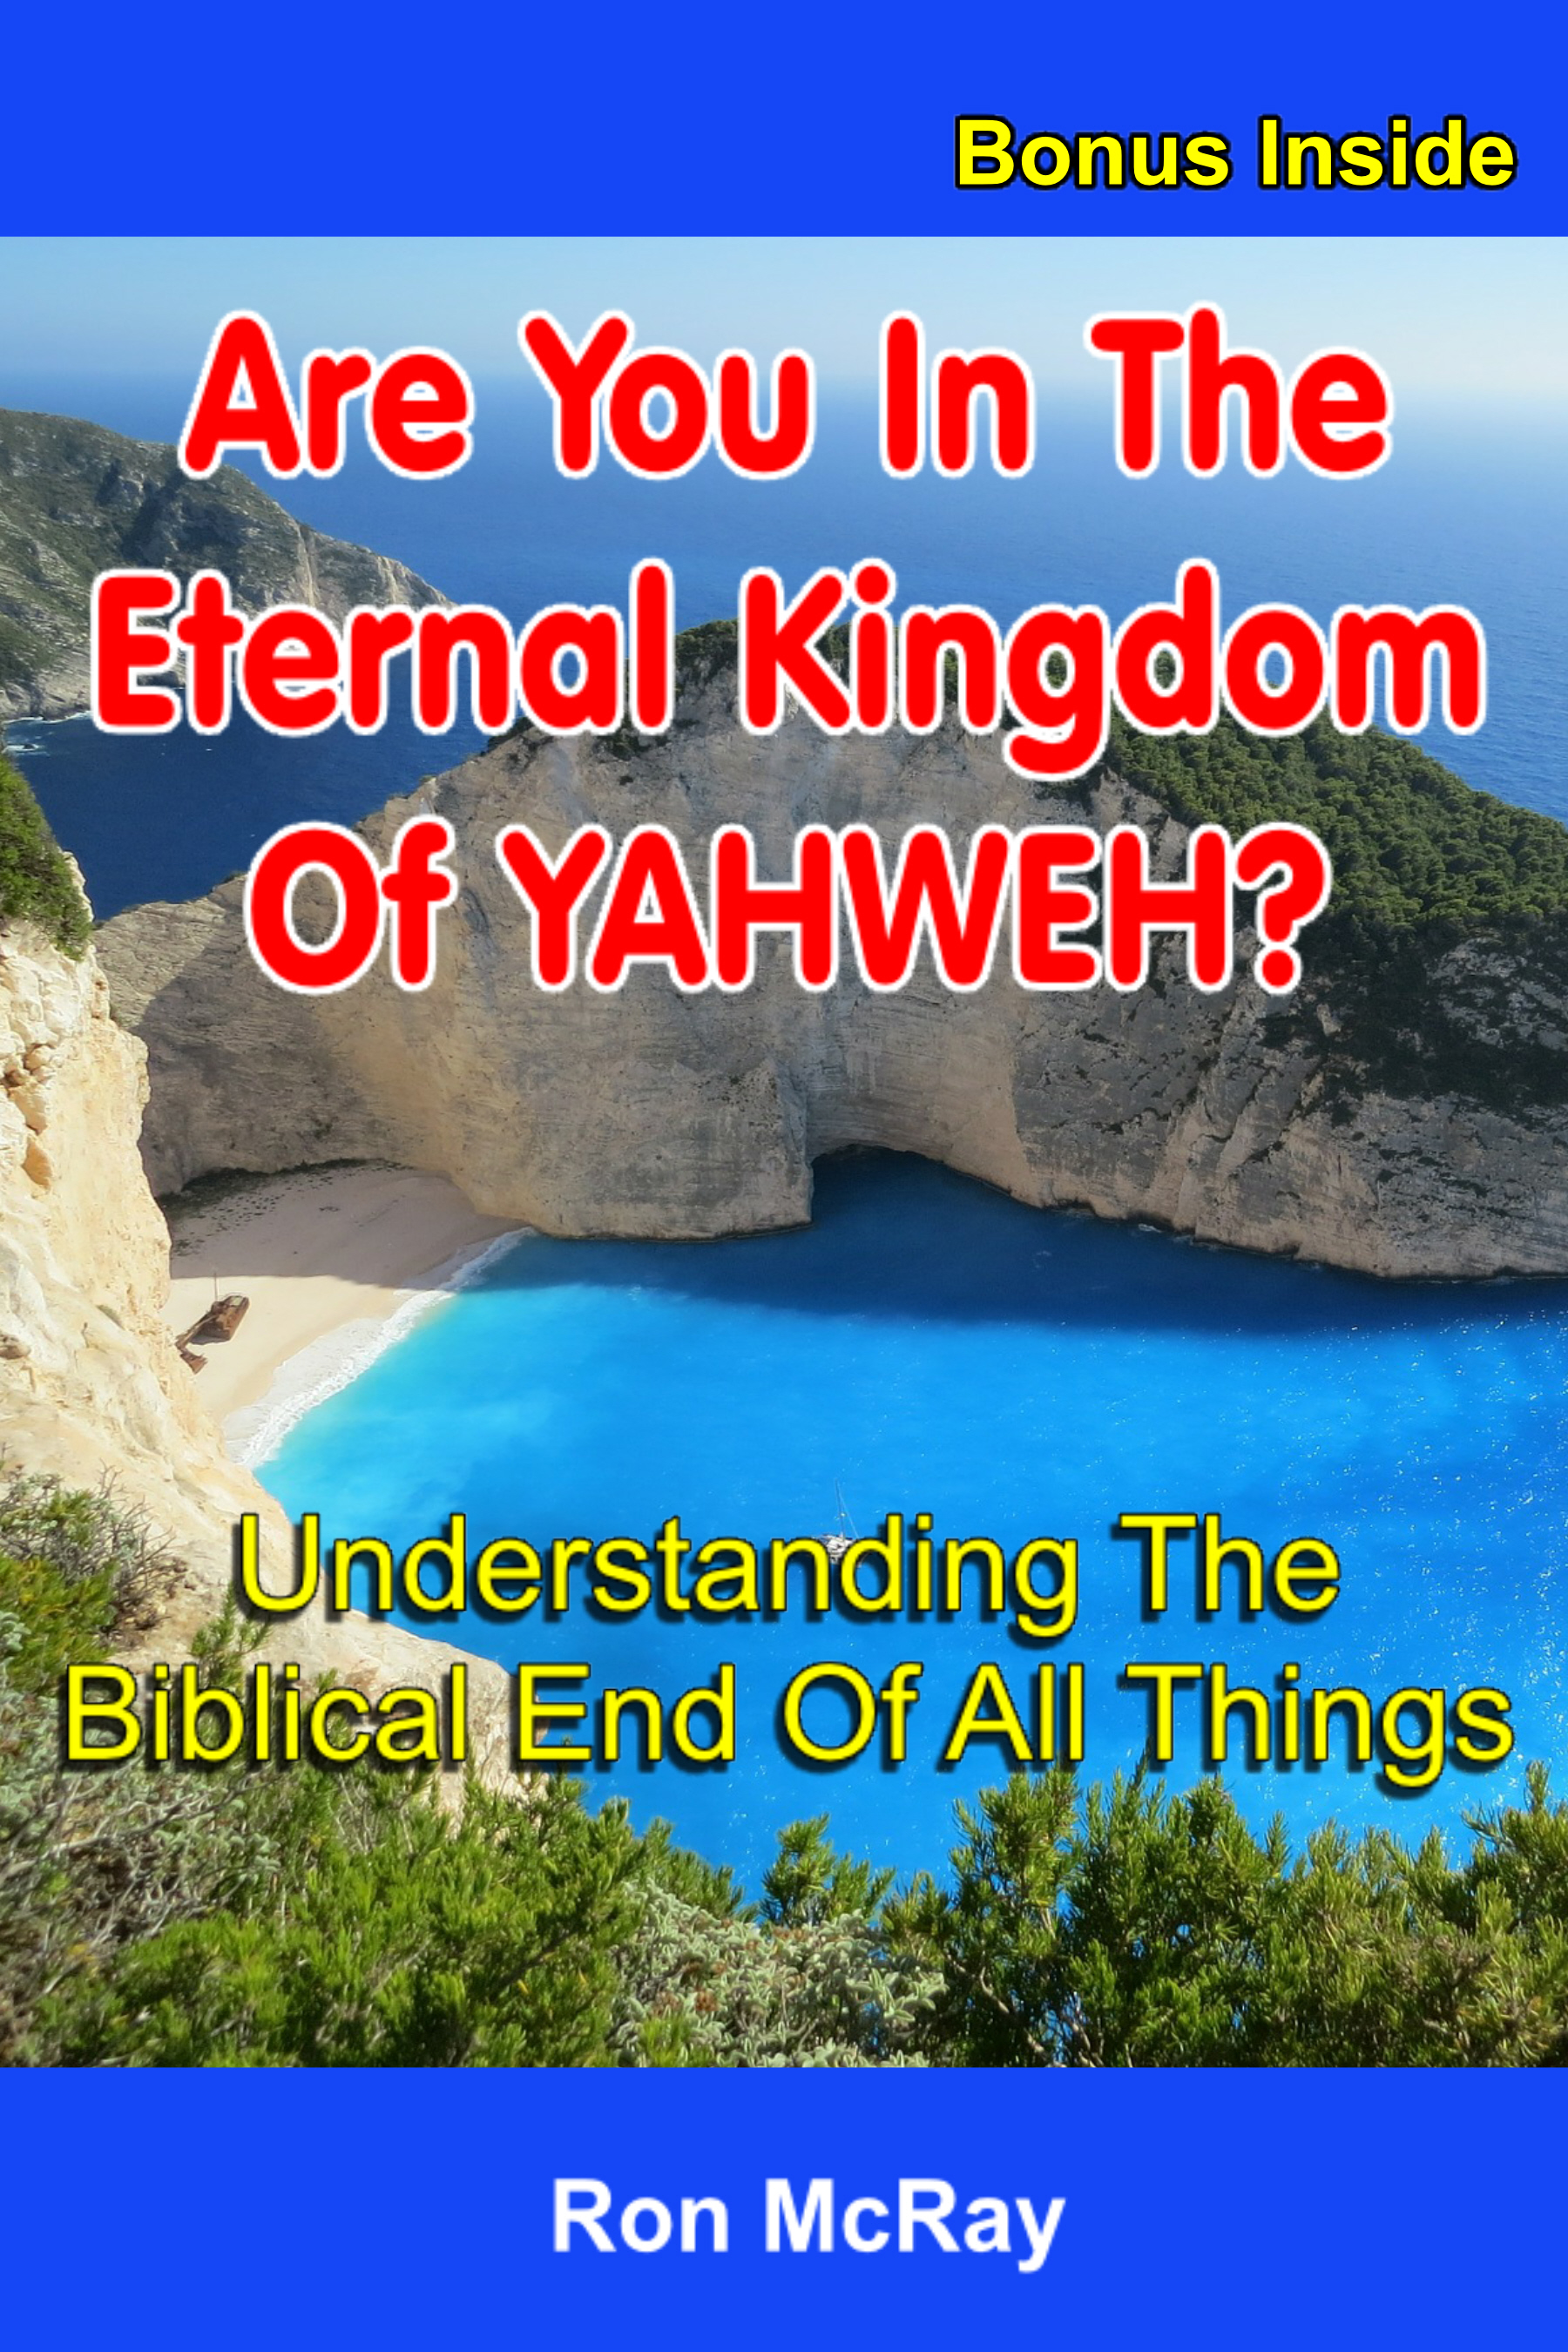 Are You In The Eternal Kingdom?